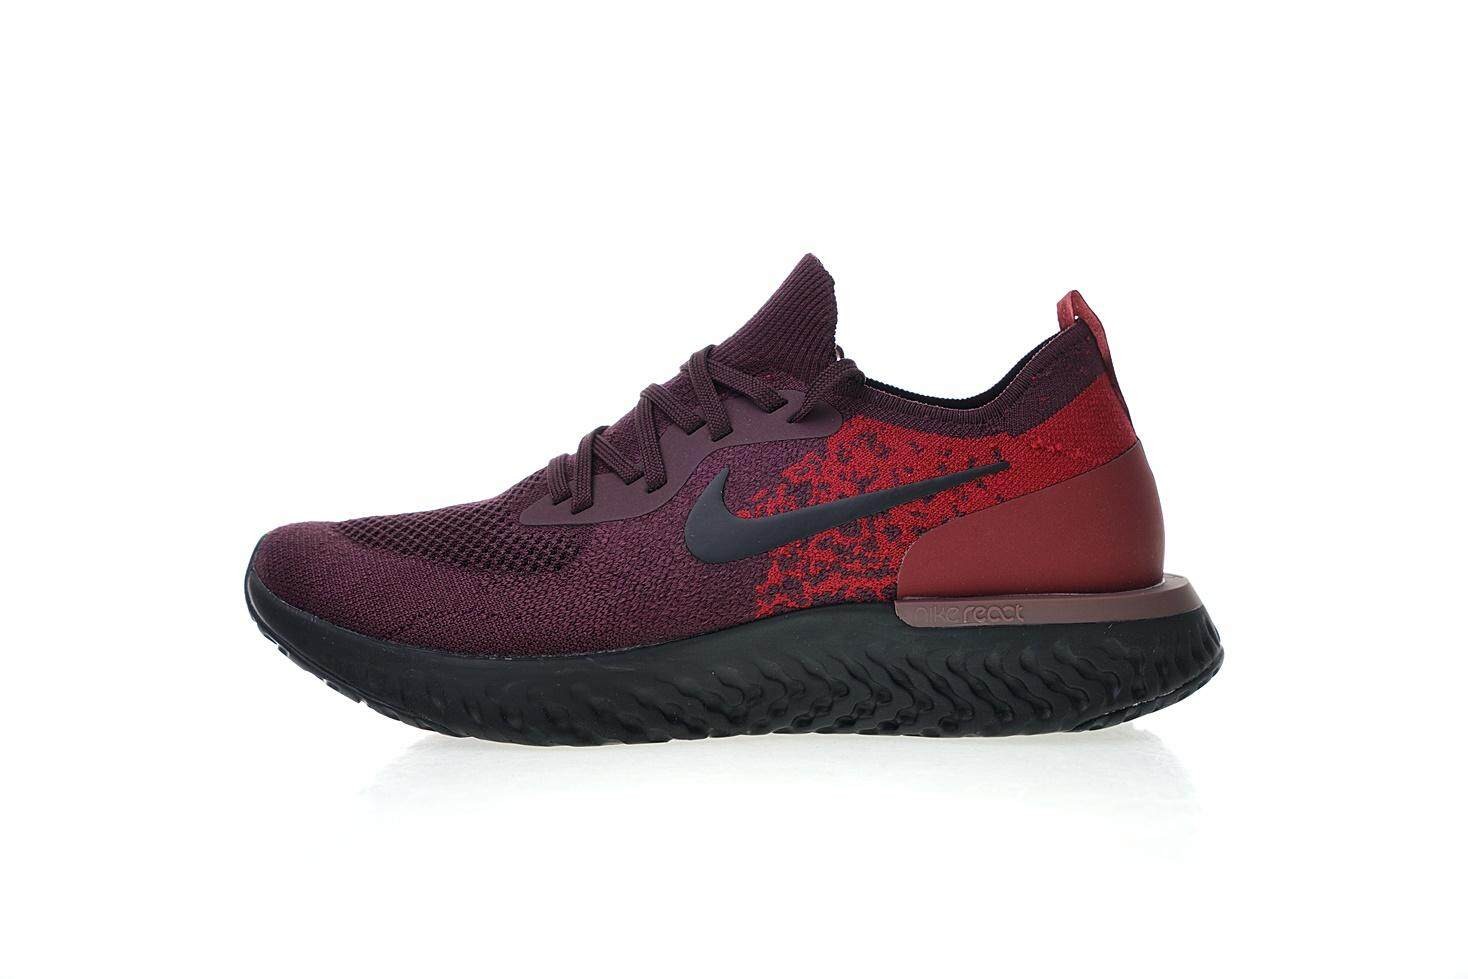 Nike Epic React Flyknit Men s Comfortable Running Sneaker Fashion Casual  Sport Shoes (Wine ... d7d6ecc086